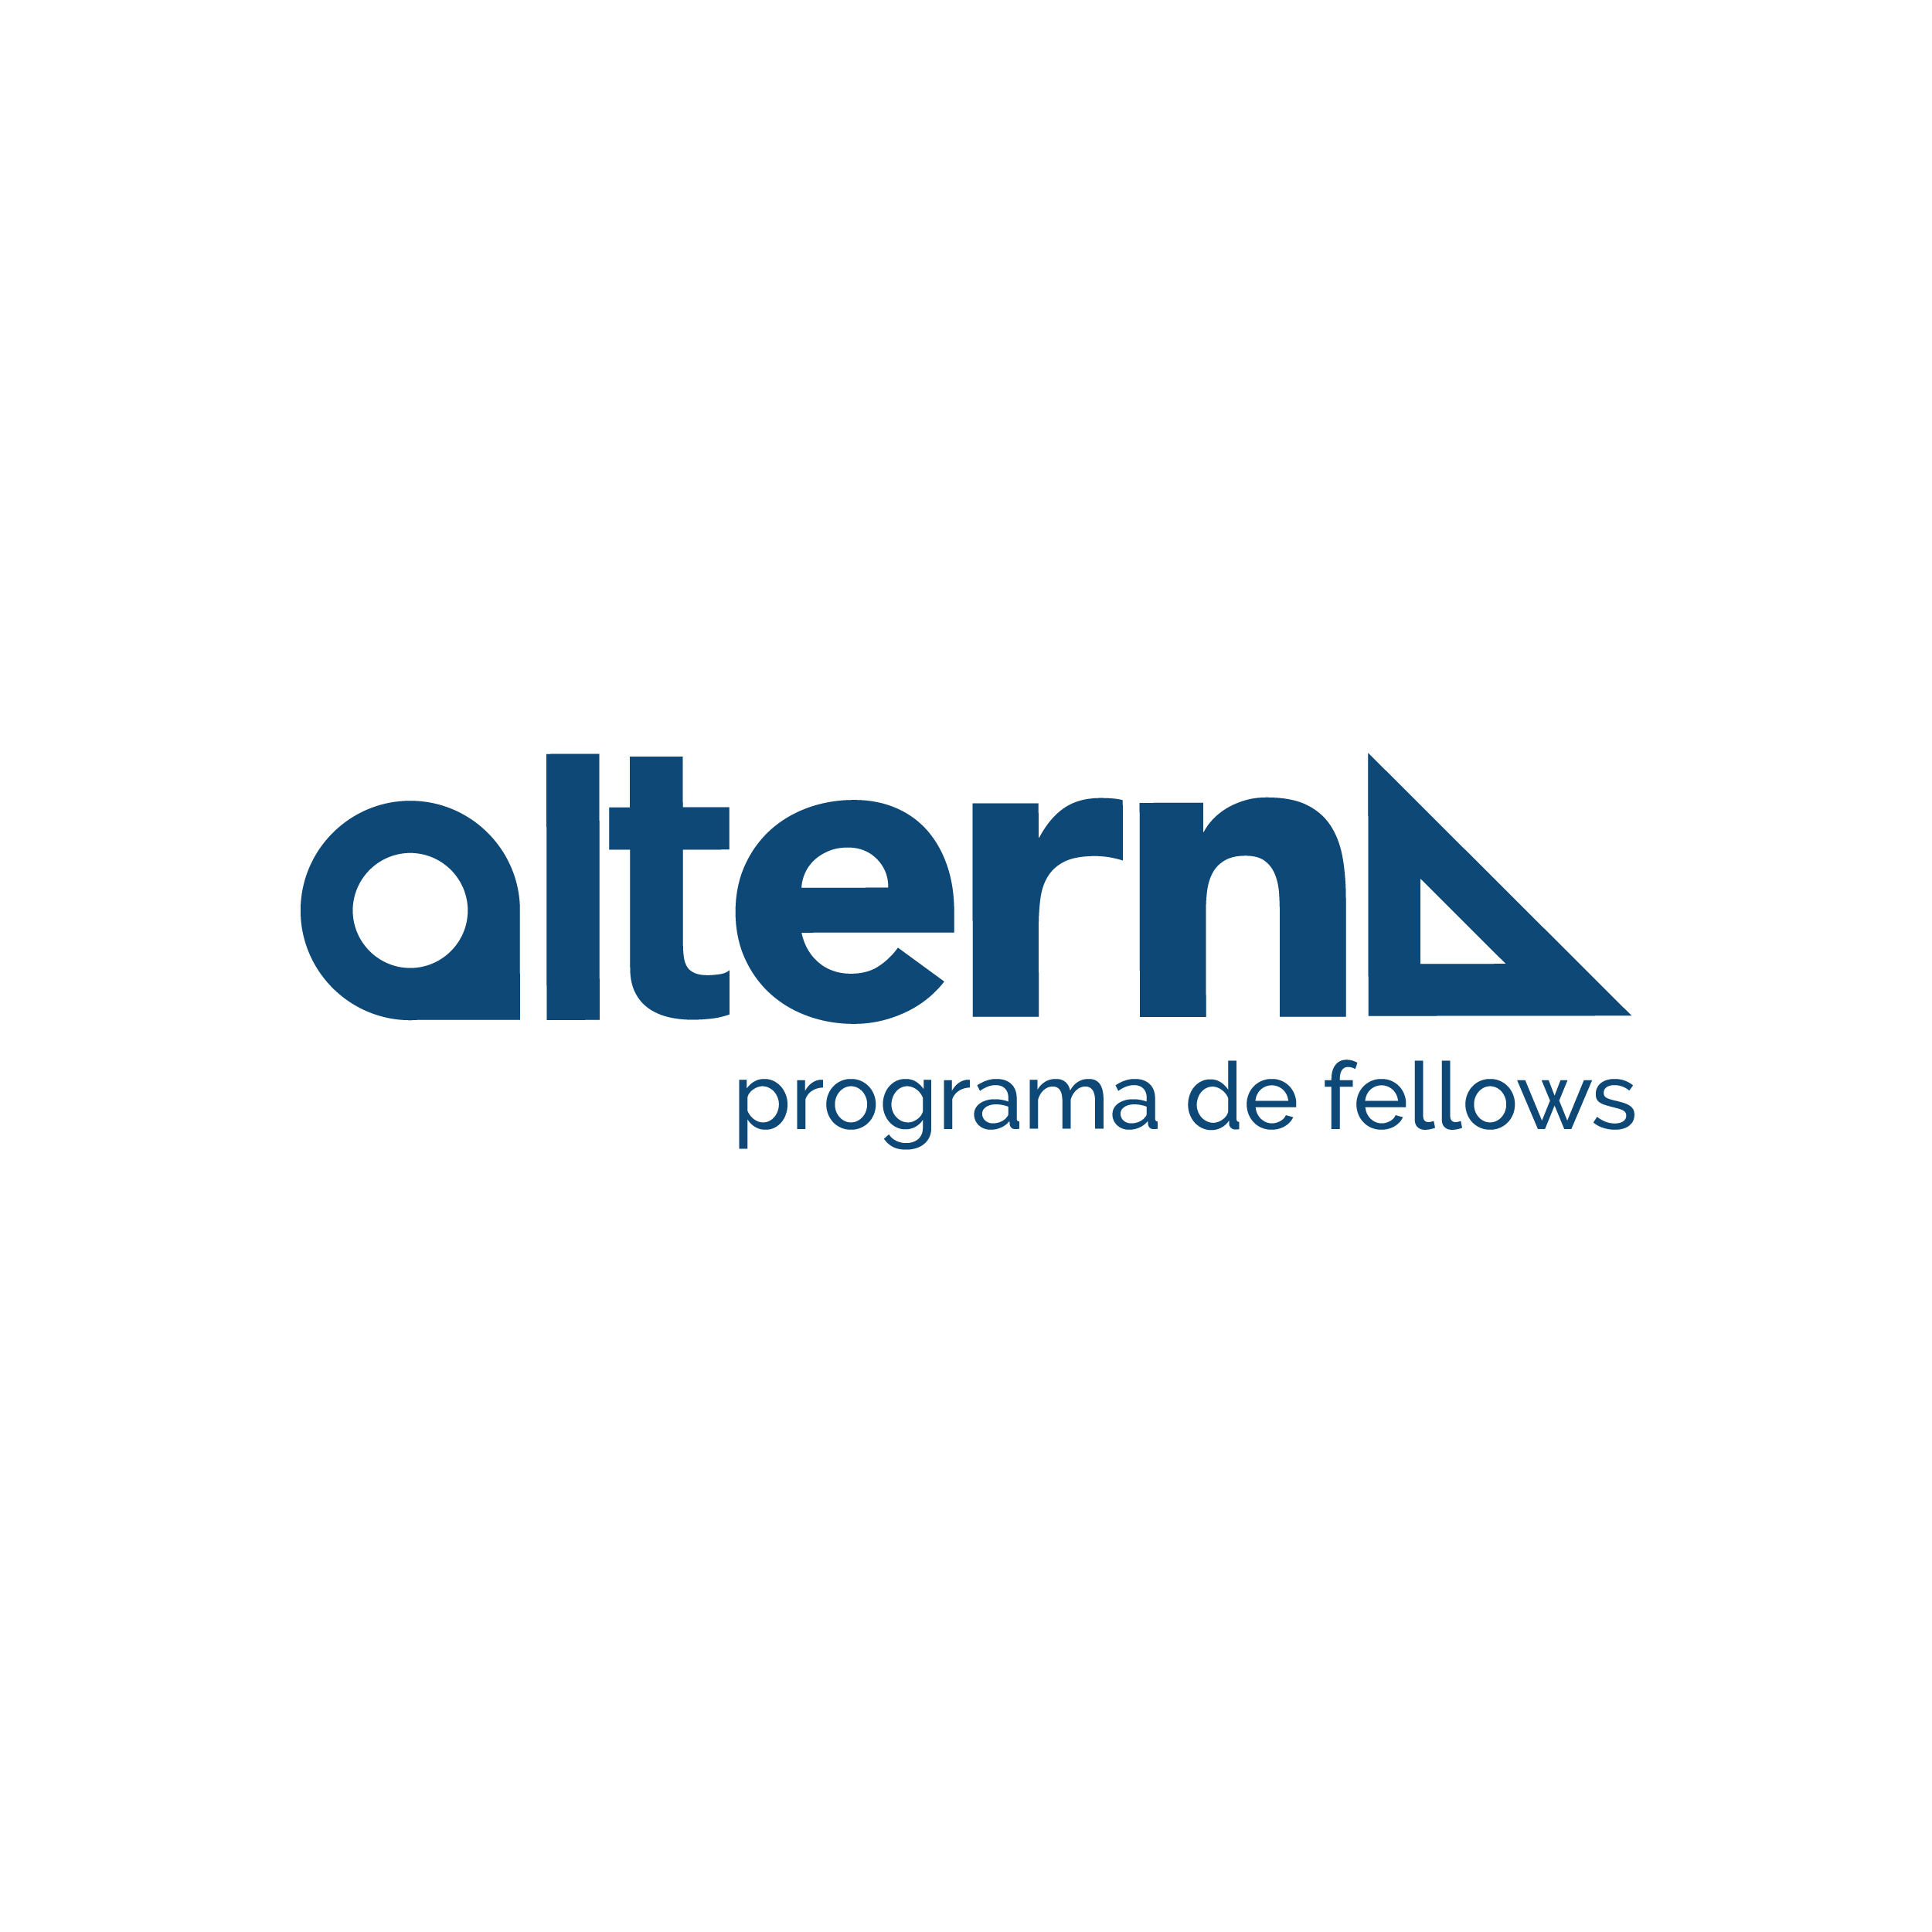 Programa de fellows Logo-01(1)